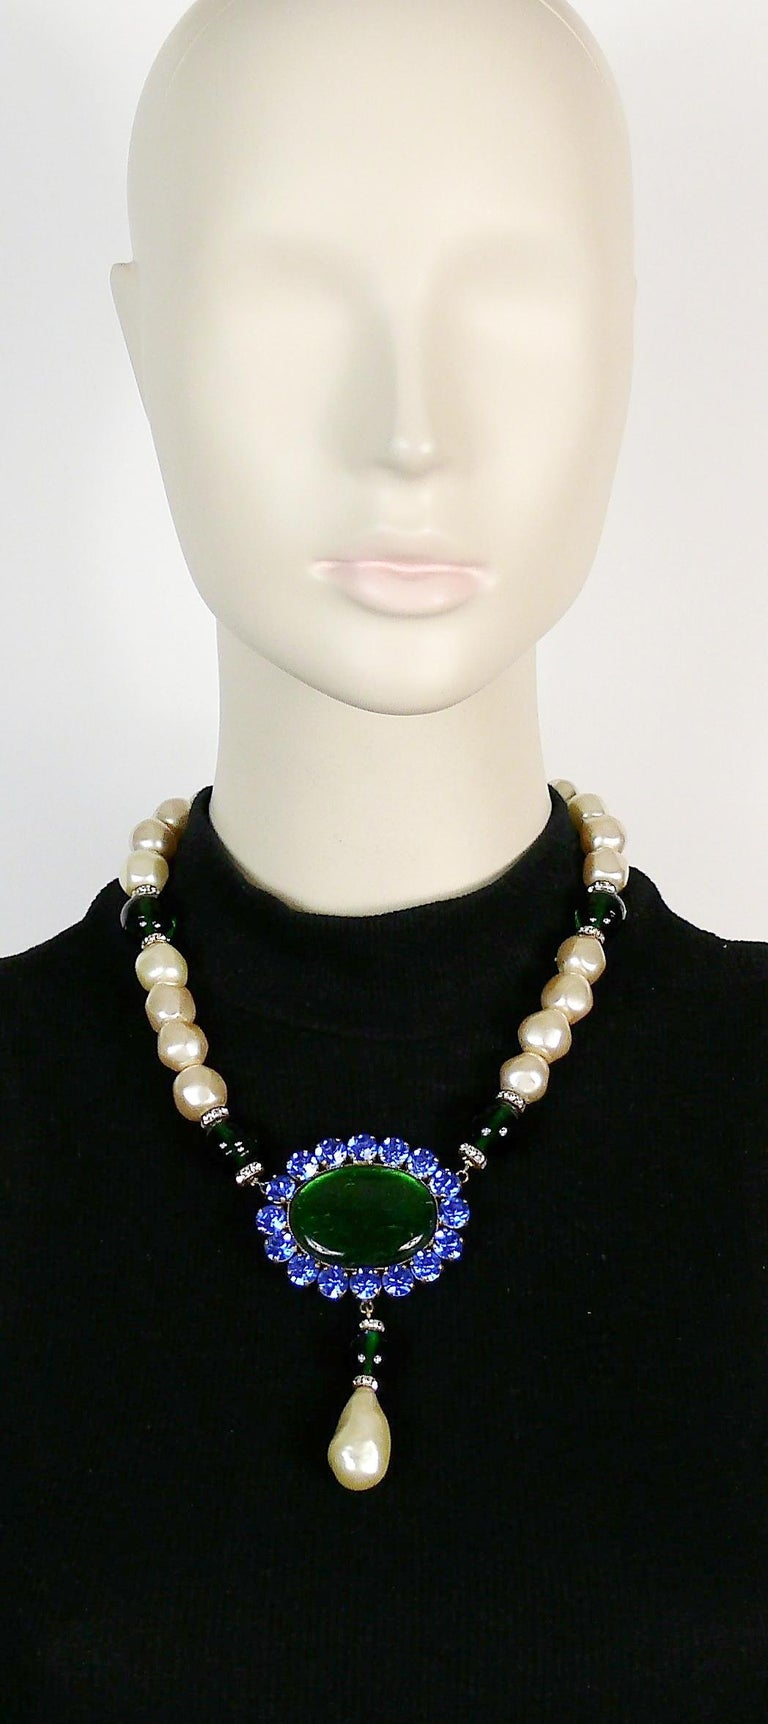 YVES SAINT LAURENT vintage necklace featuring large emerald glass beads/cabochon, faux pearls, emerald/sapphire crystals and clear crystal rondelles.  Hook clasp closure.  Unmarked (missing the YSL signature tag).  Indicative measurements : length